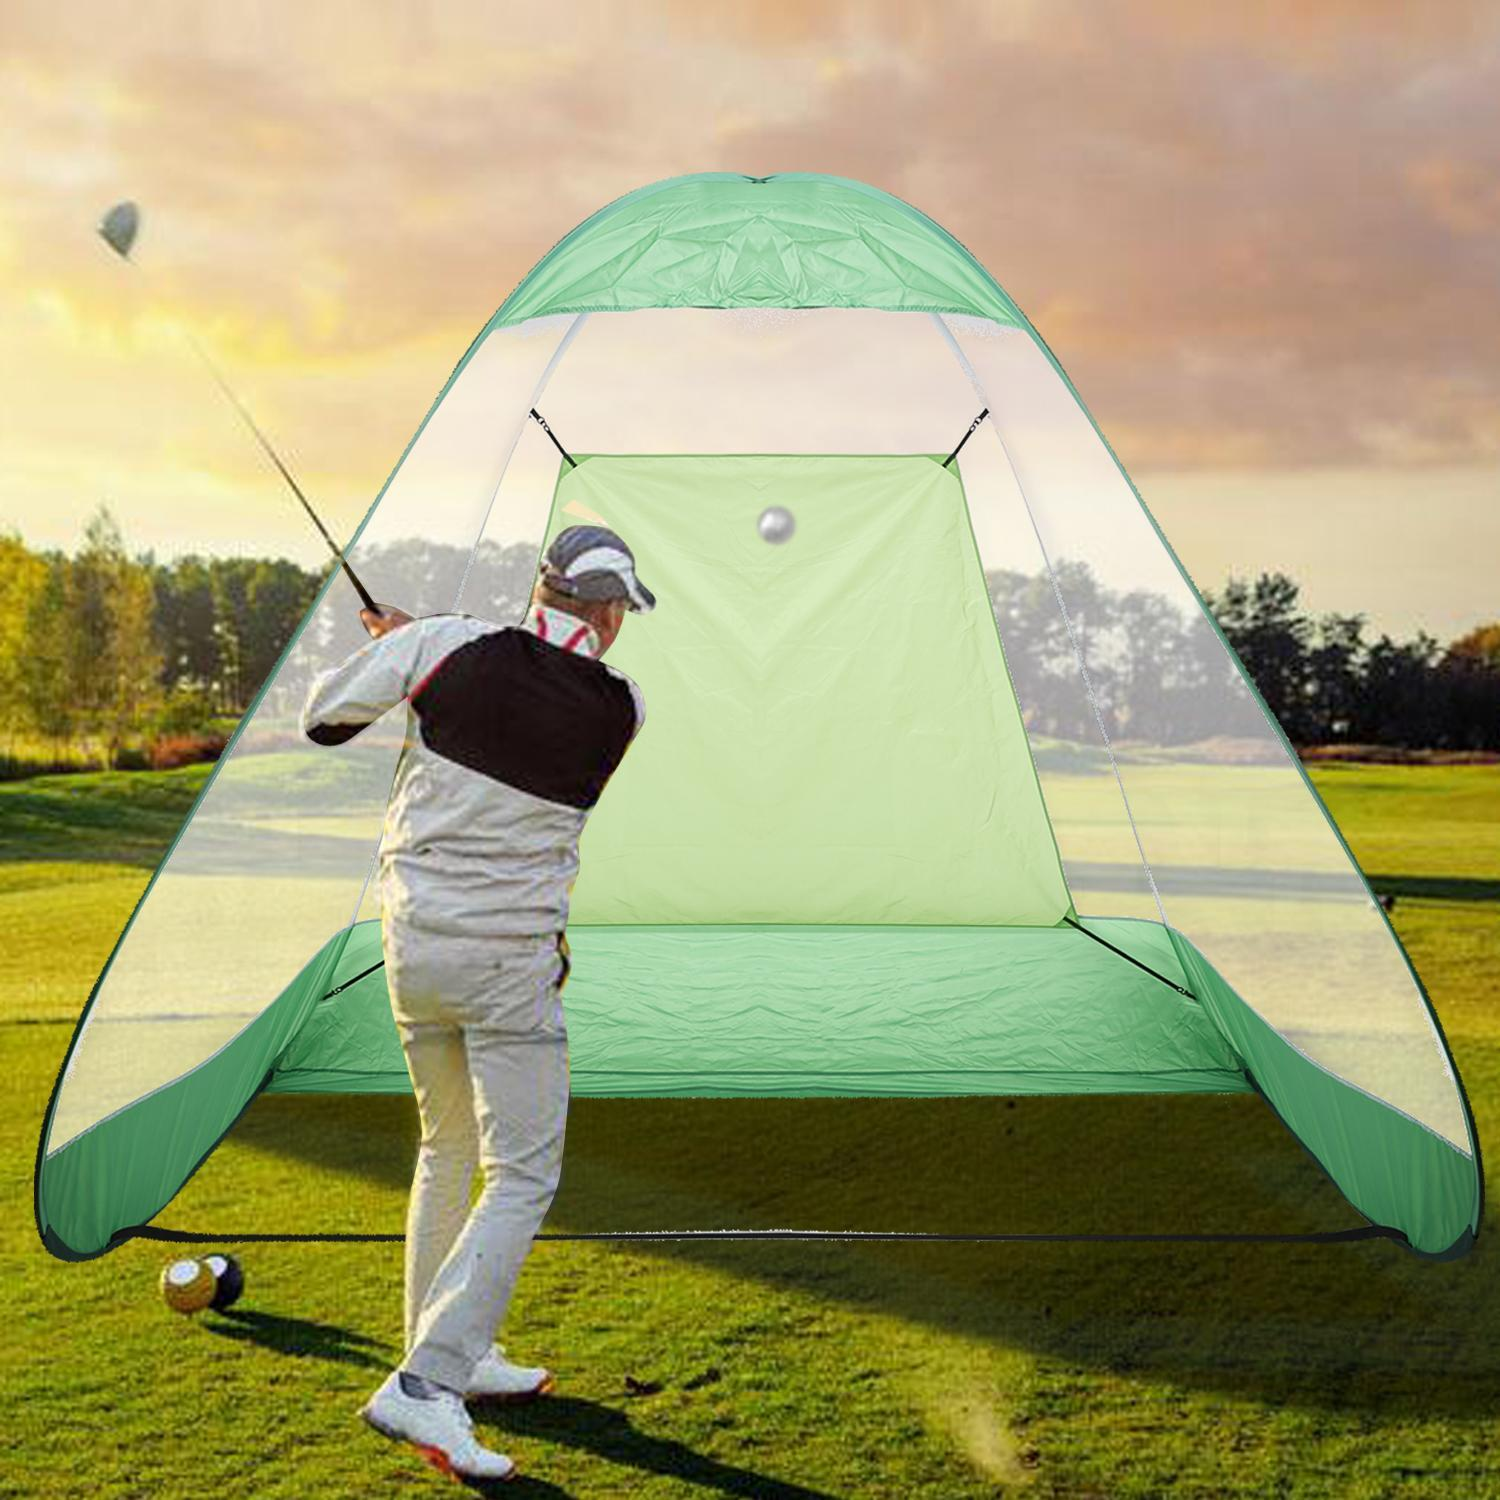 Christmas Hot Selling Portable Pop-Up Foldable Golf Pract...